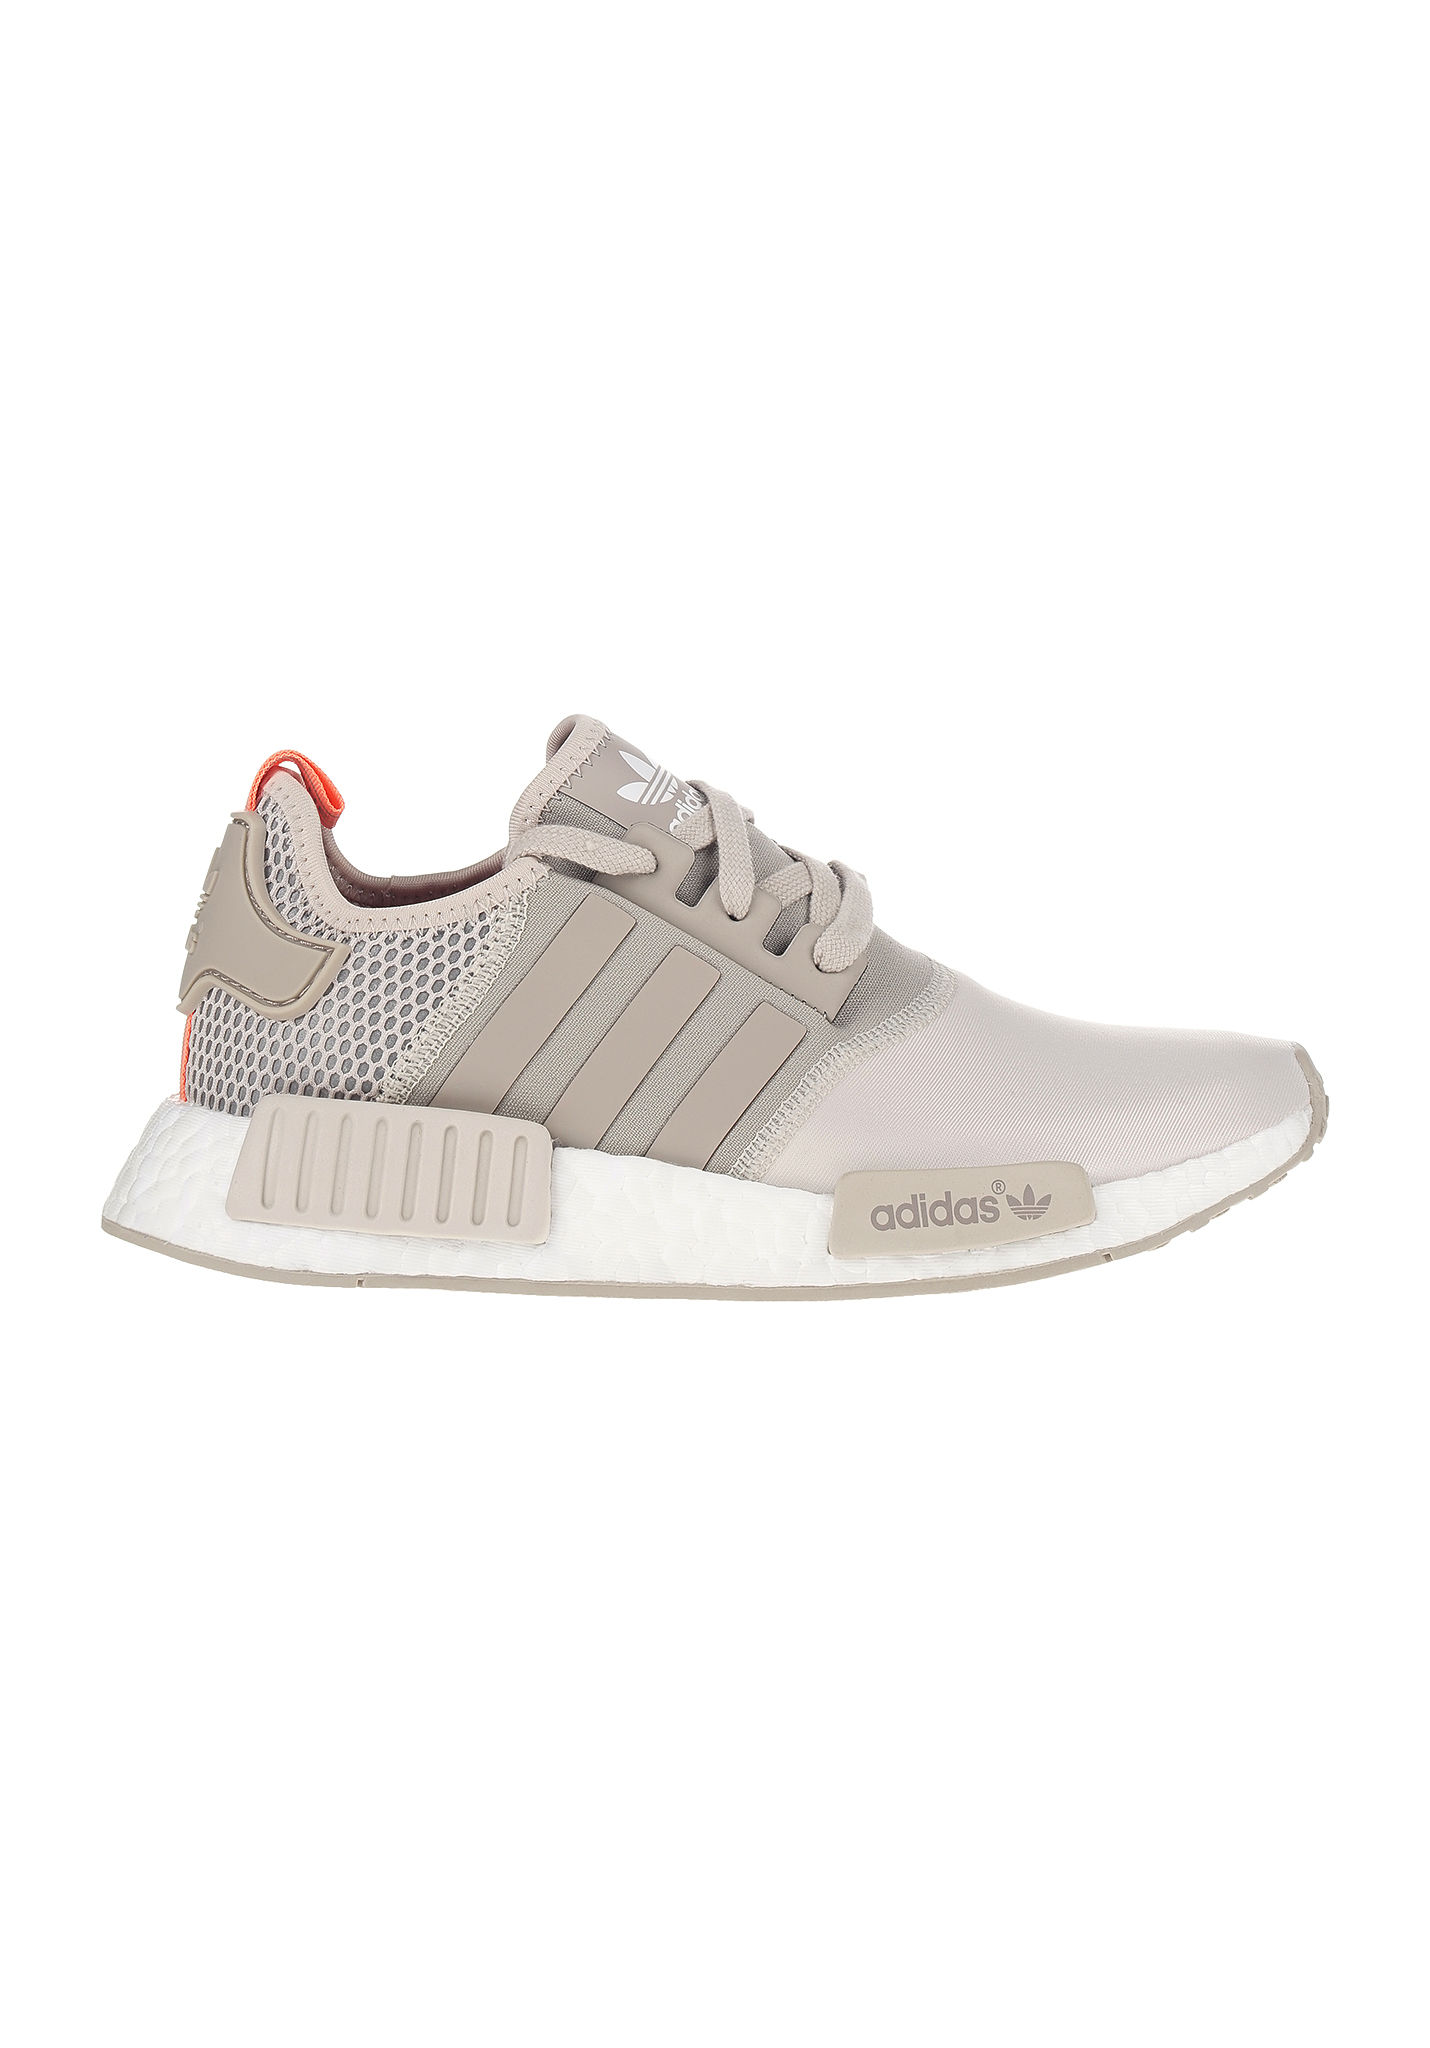 adidas nmd c1 donna rosse